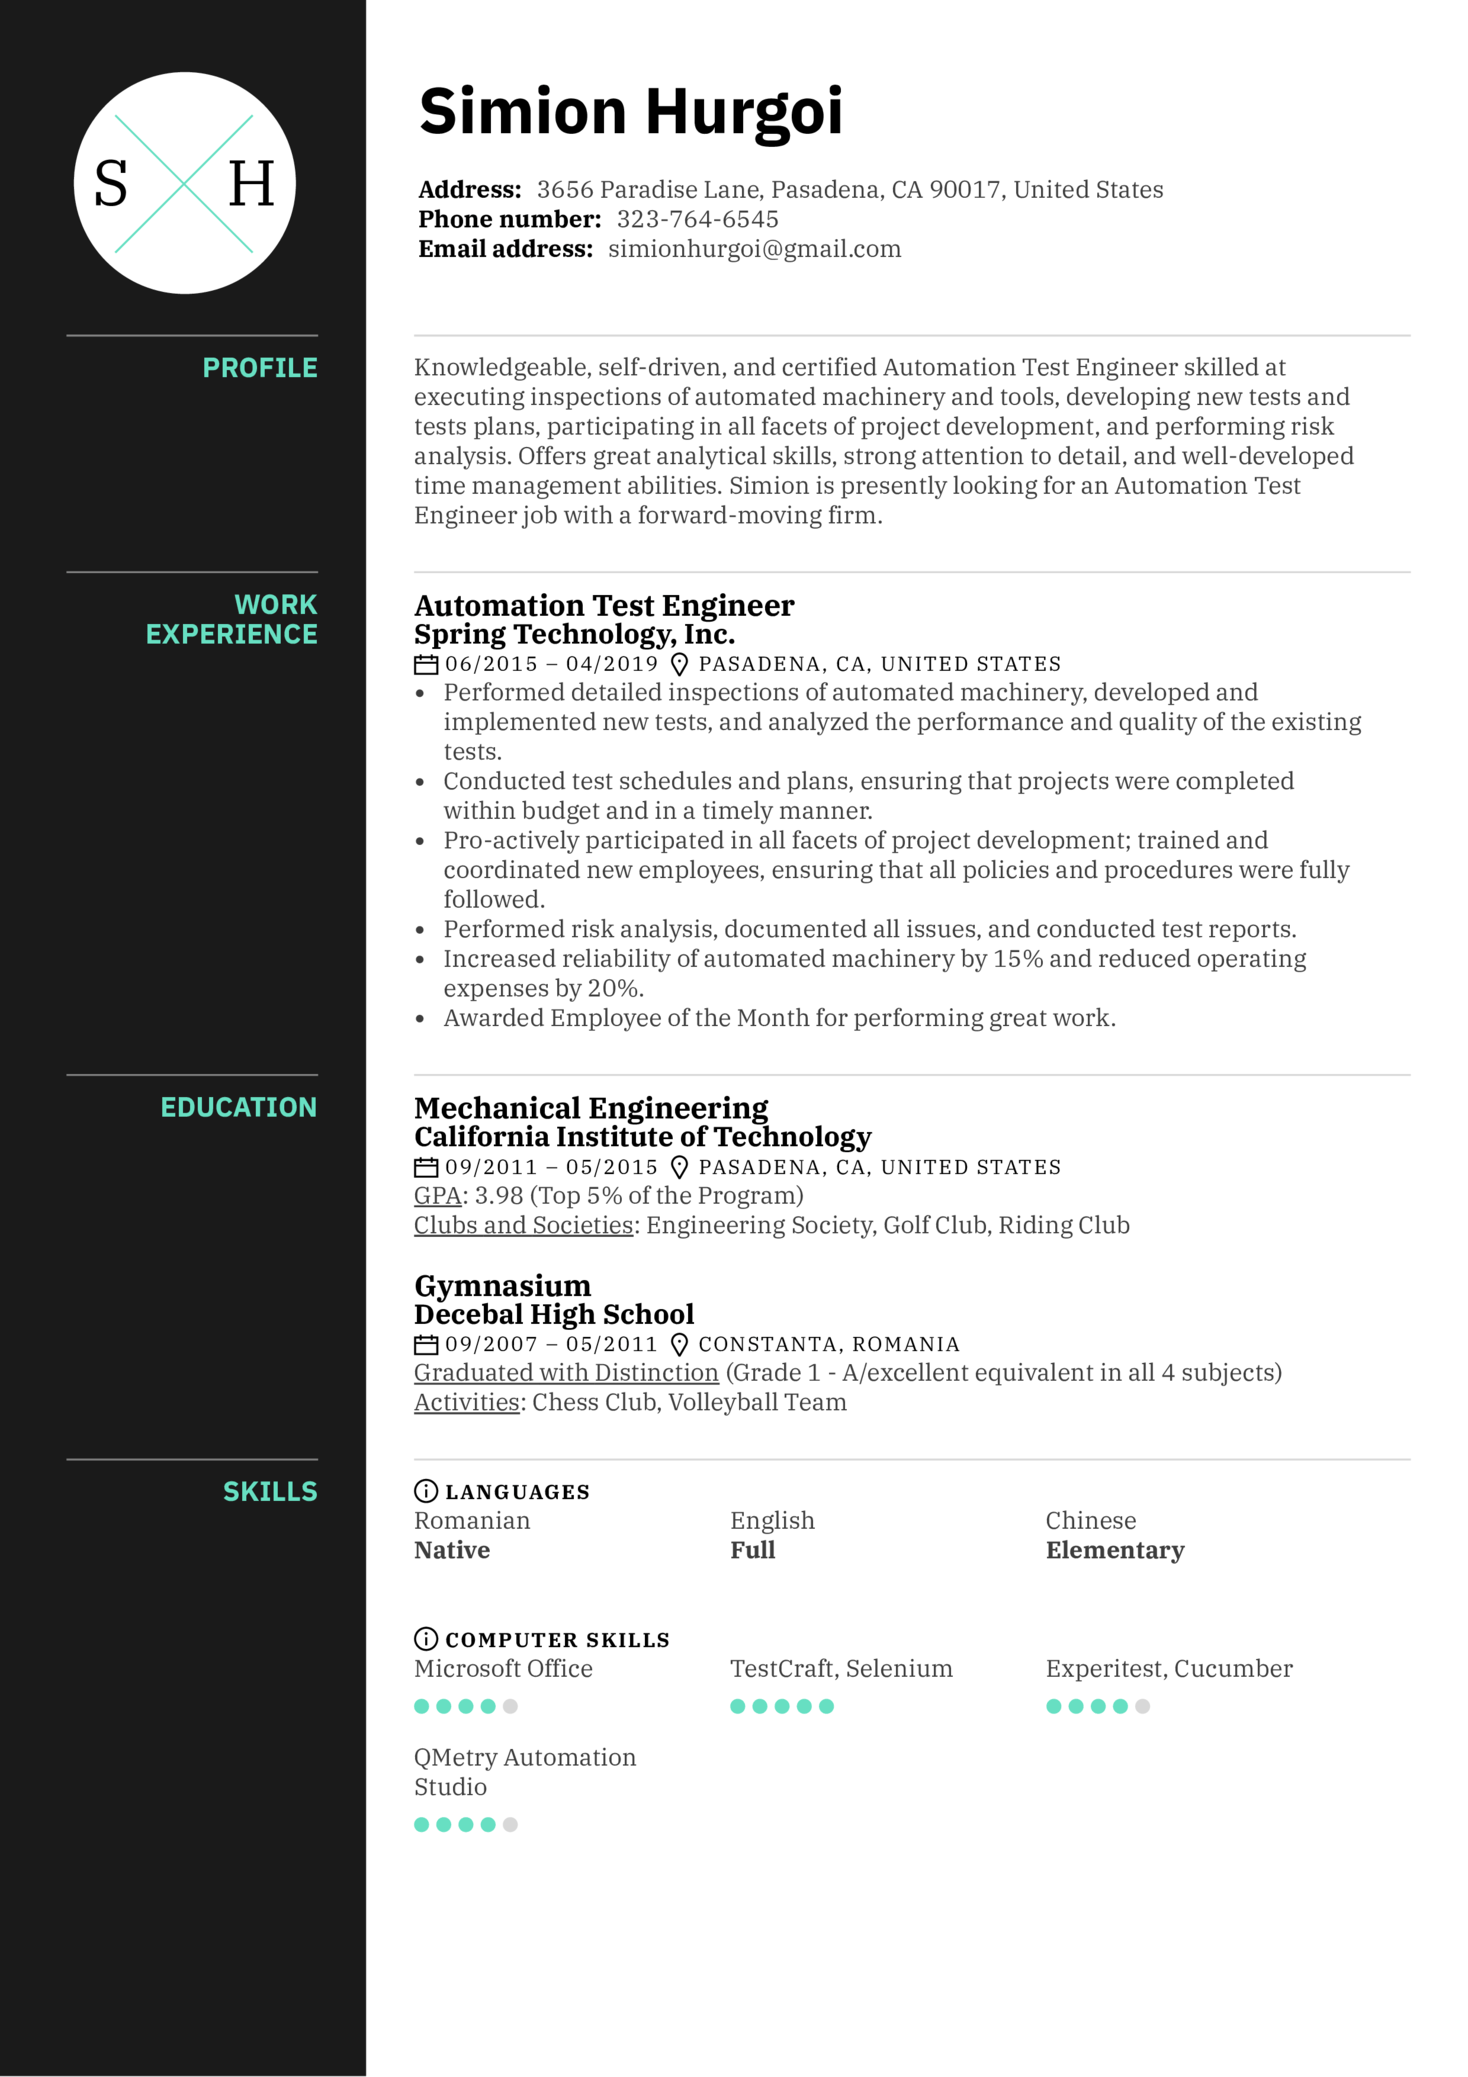 Automation Test Engineer Resume Sample (Part 1)